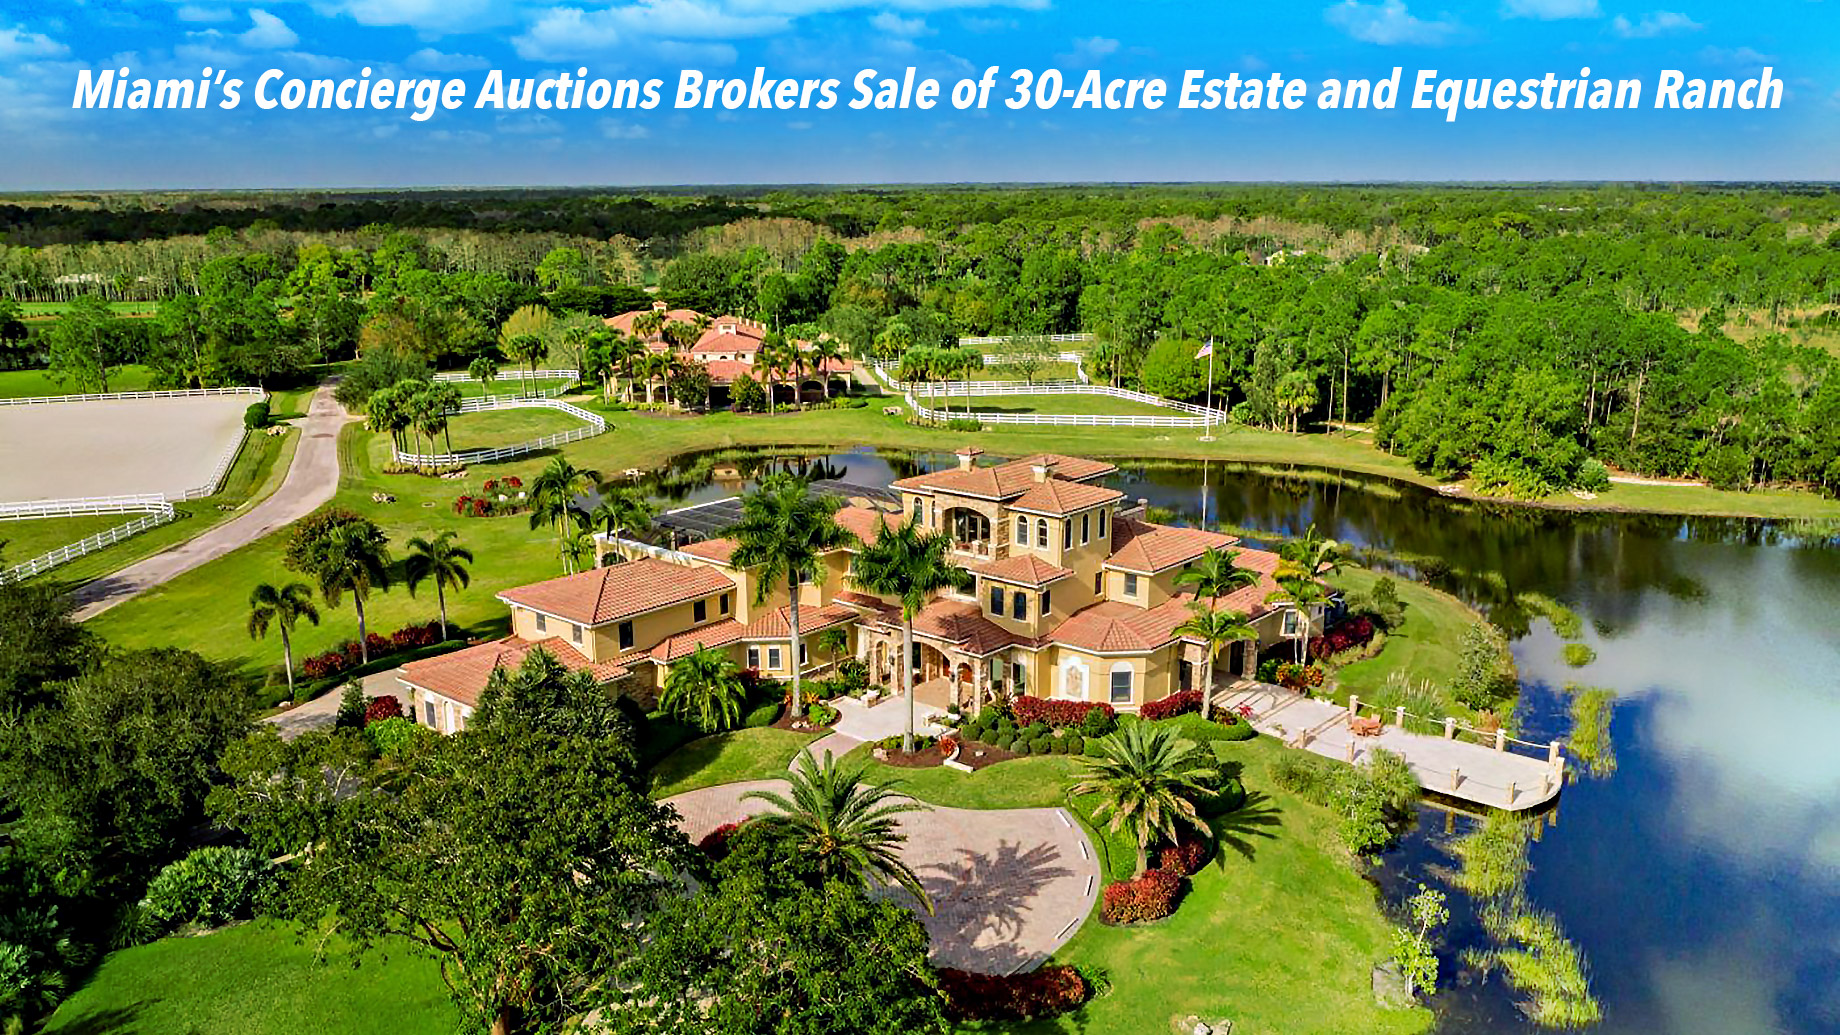 Miami's Concierge Auctions Brokers Sale of 30-Acre Estate and Equestrian Ranch